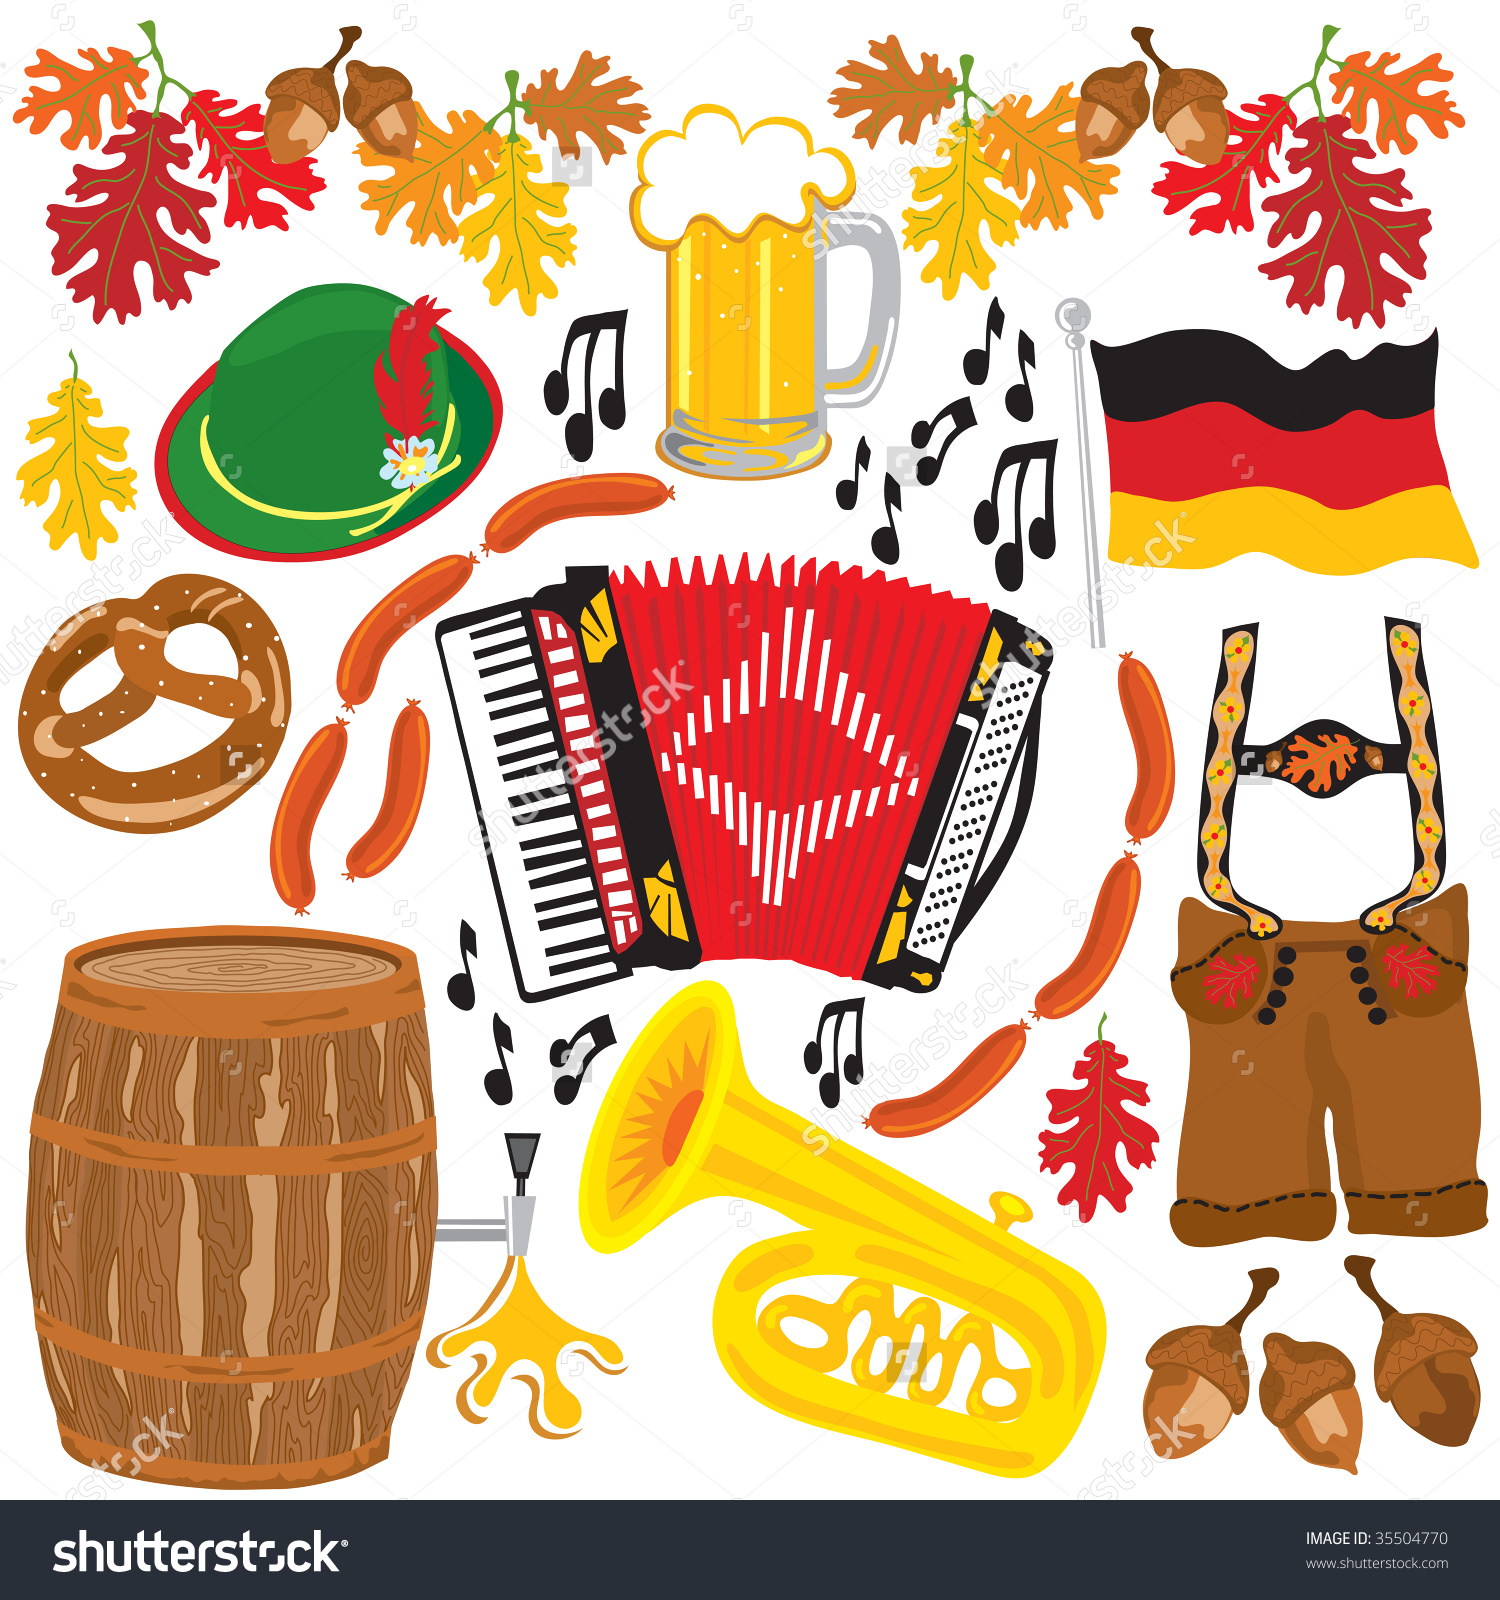 Dirndl und lederhose clipart banner library stock Oktoberfest Party Clipart Elements Isolated On White Stock Vector ... banner library stock